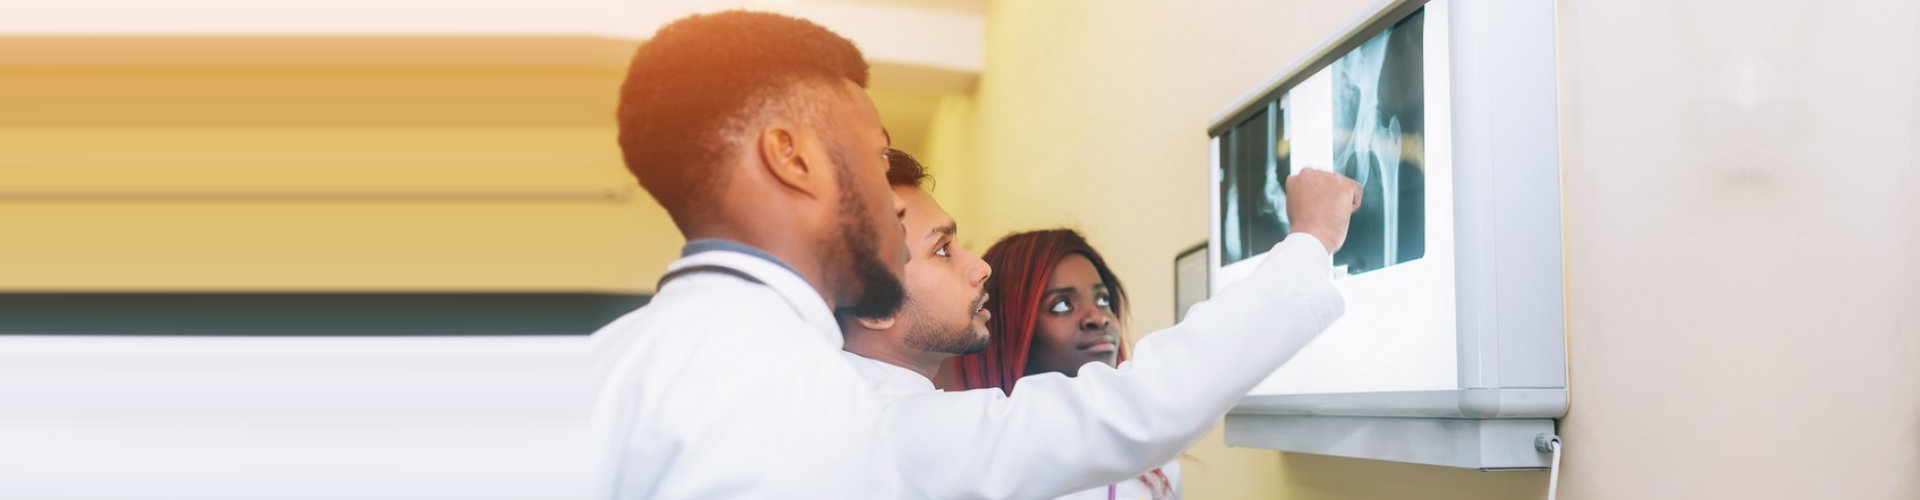 staff looking at the xray